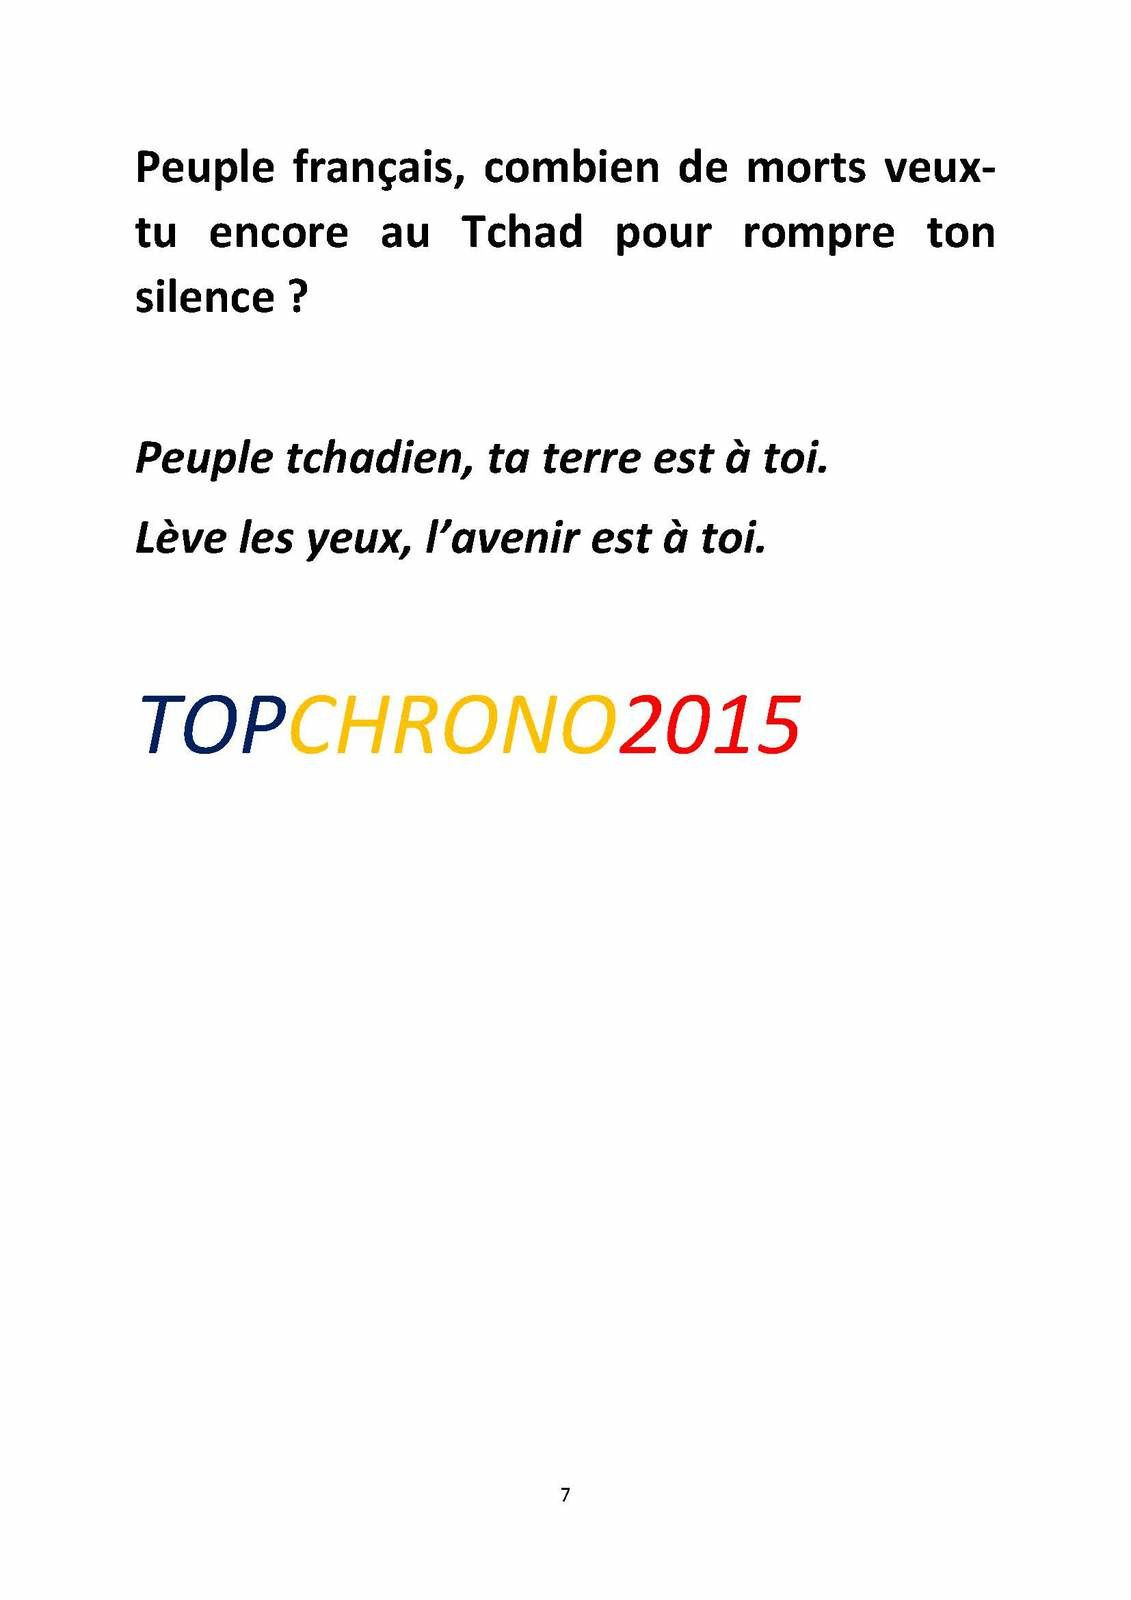 Tchad: TOPCHRONO2015 interpelle le Président Obama